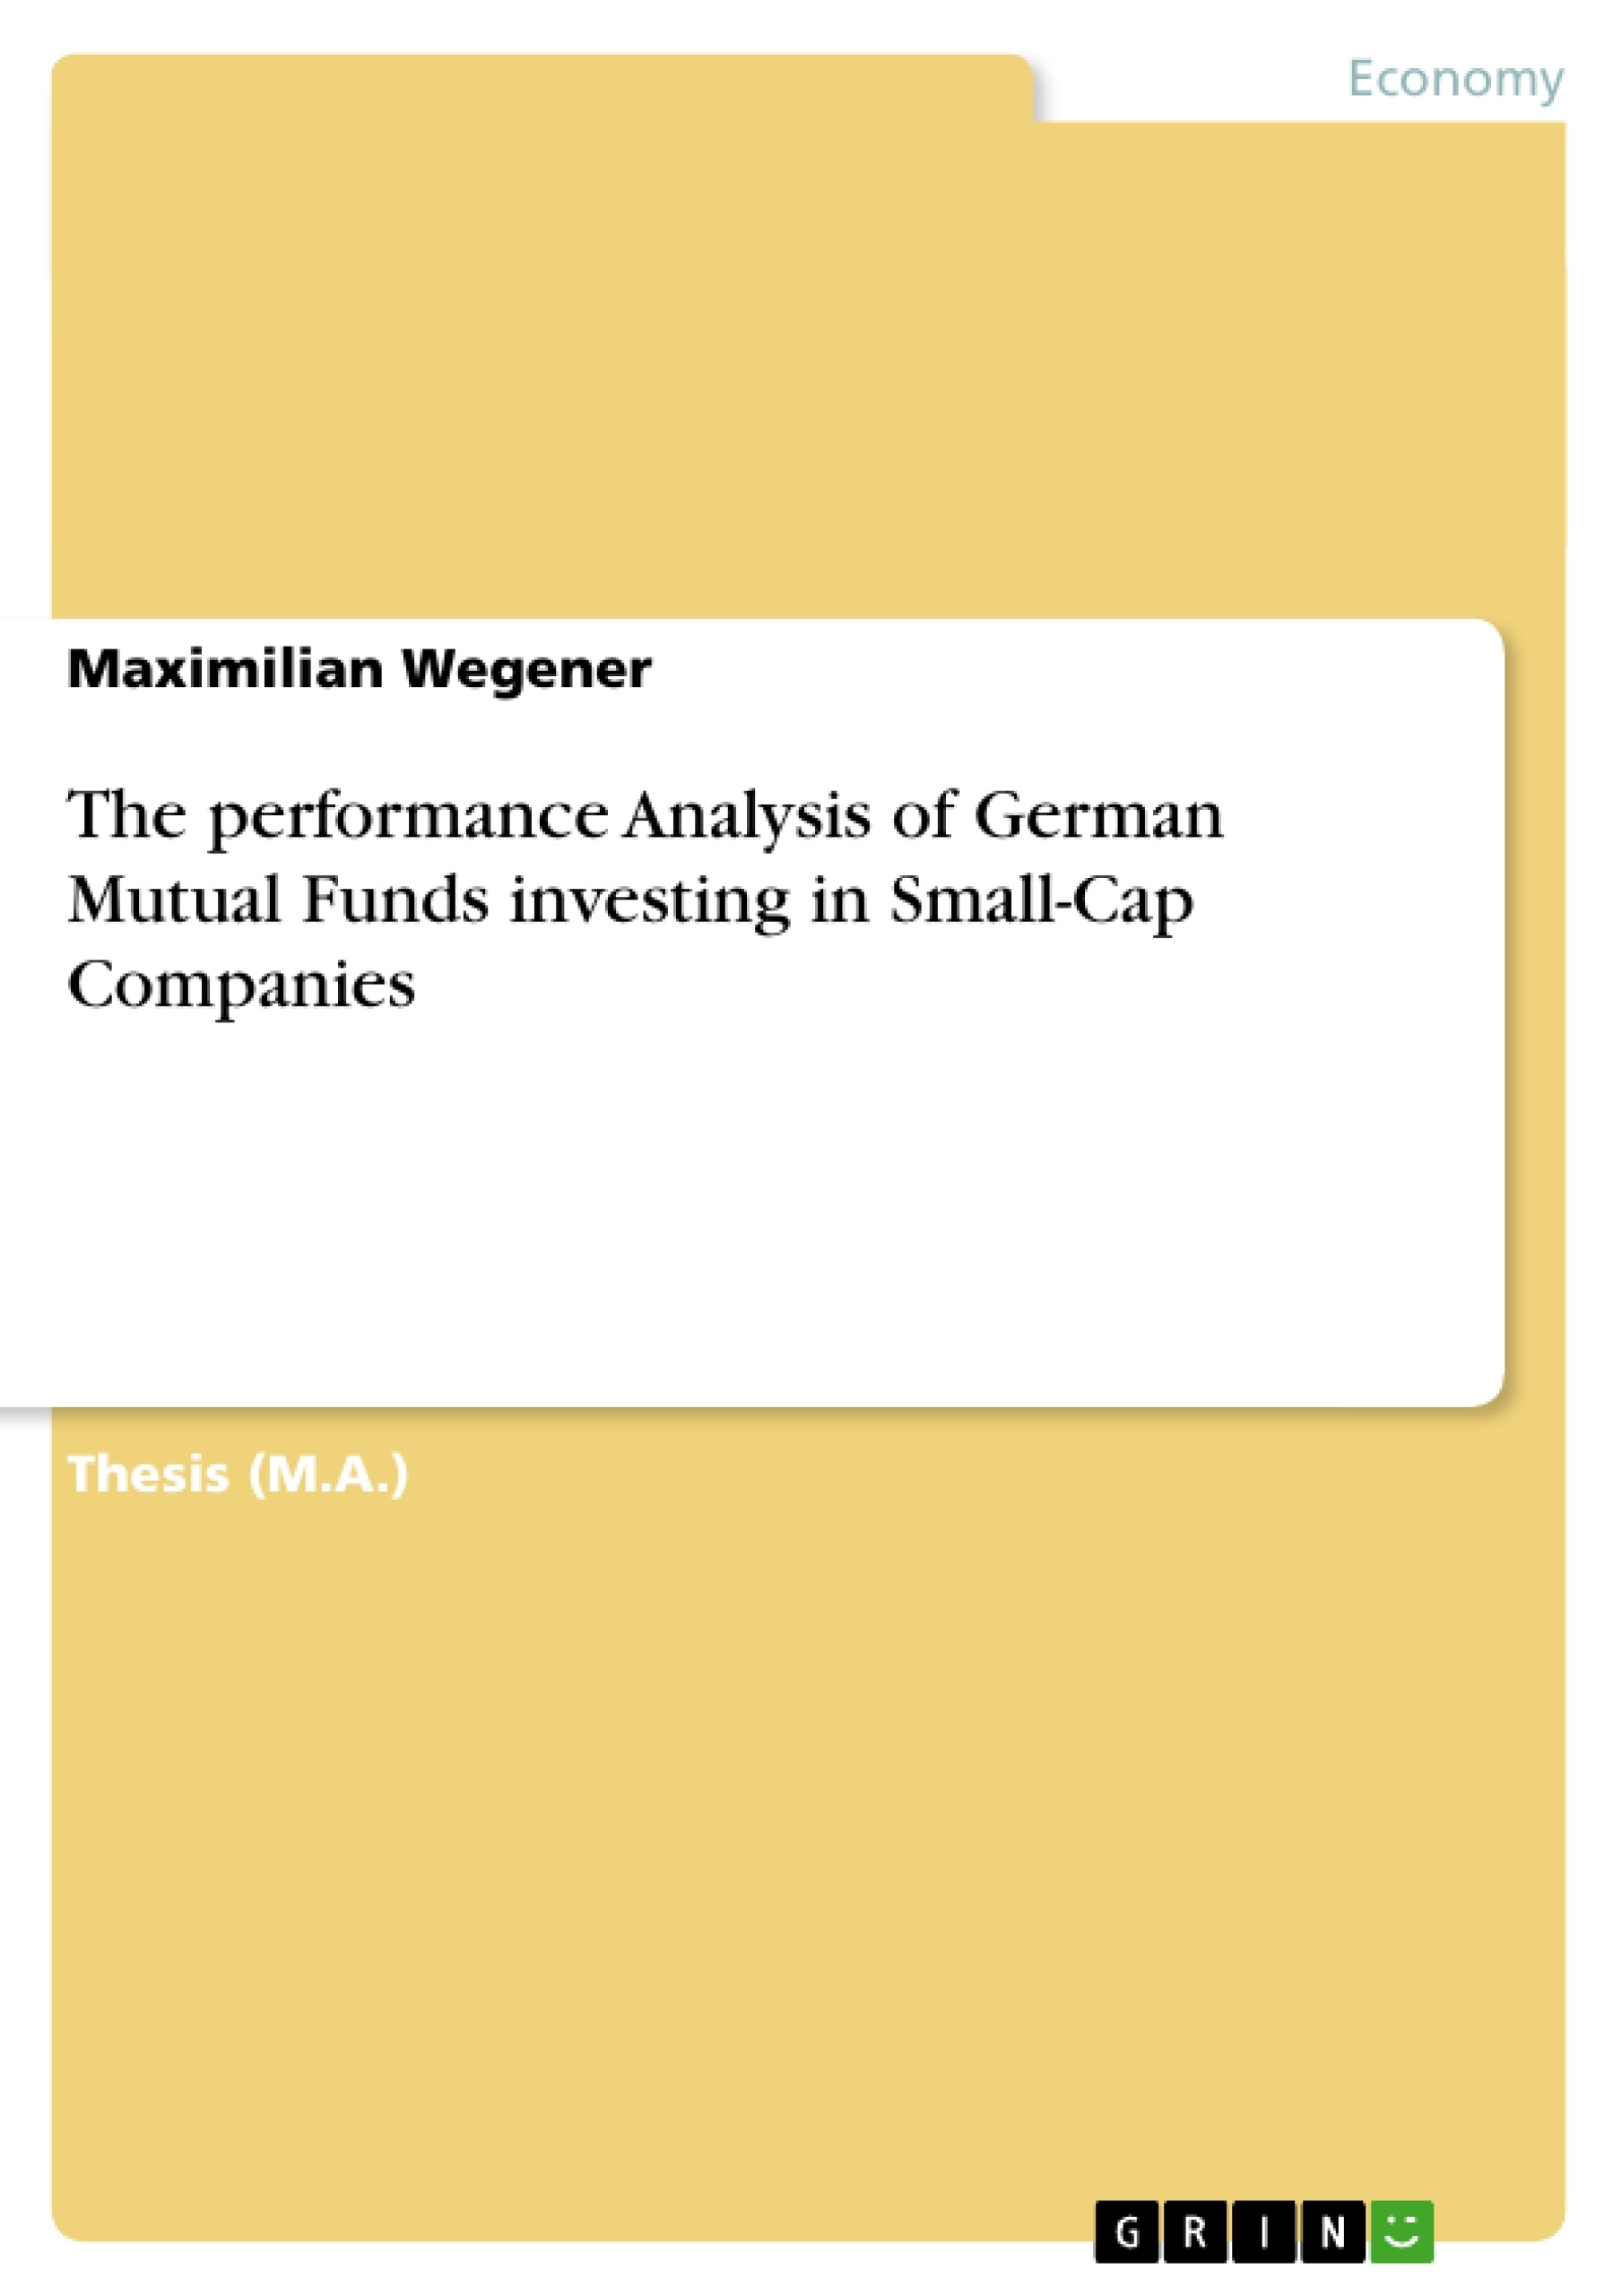 thesis on mutual funds performance